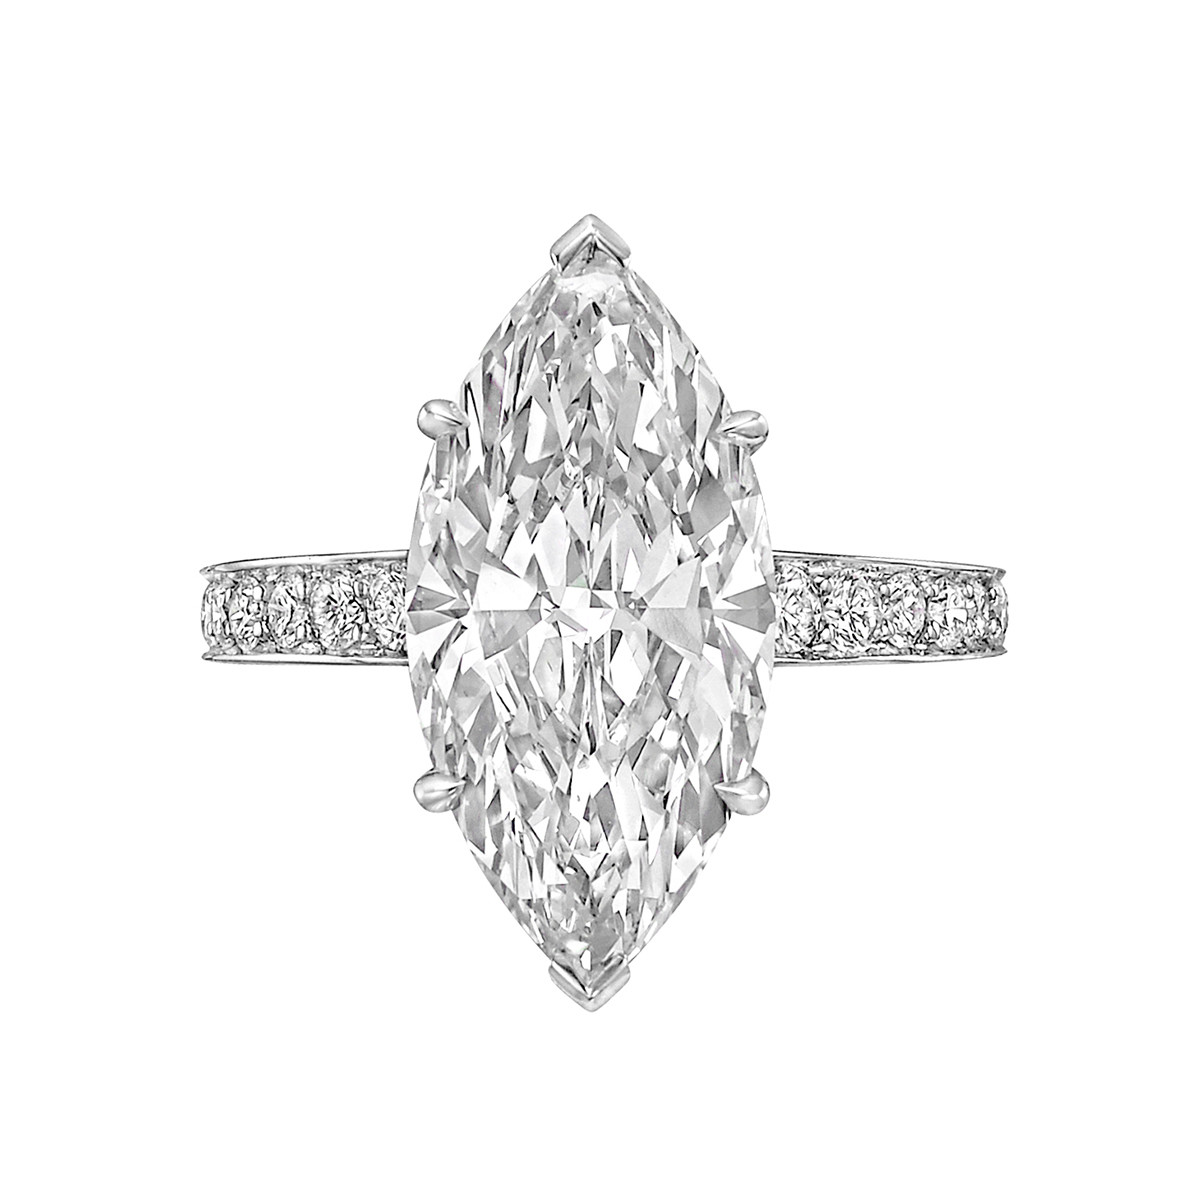 5.06ct Fine Colorless Marquise-Cut Diamond Ring